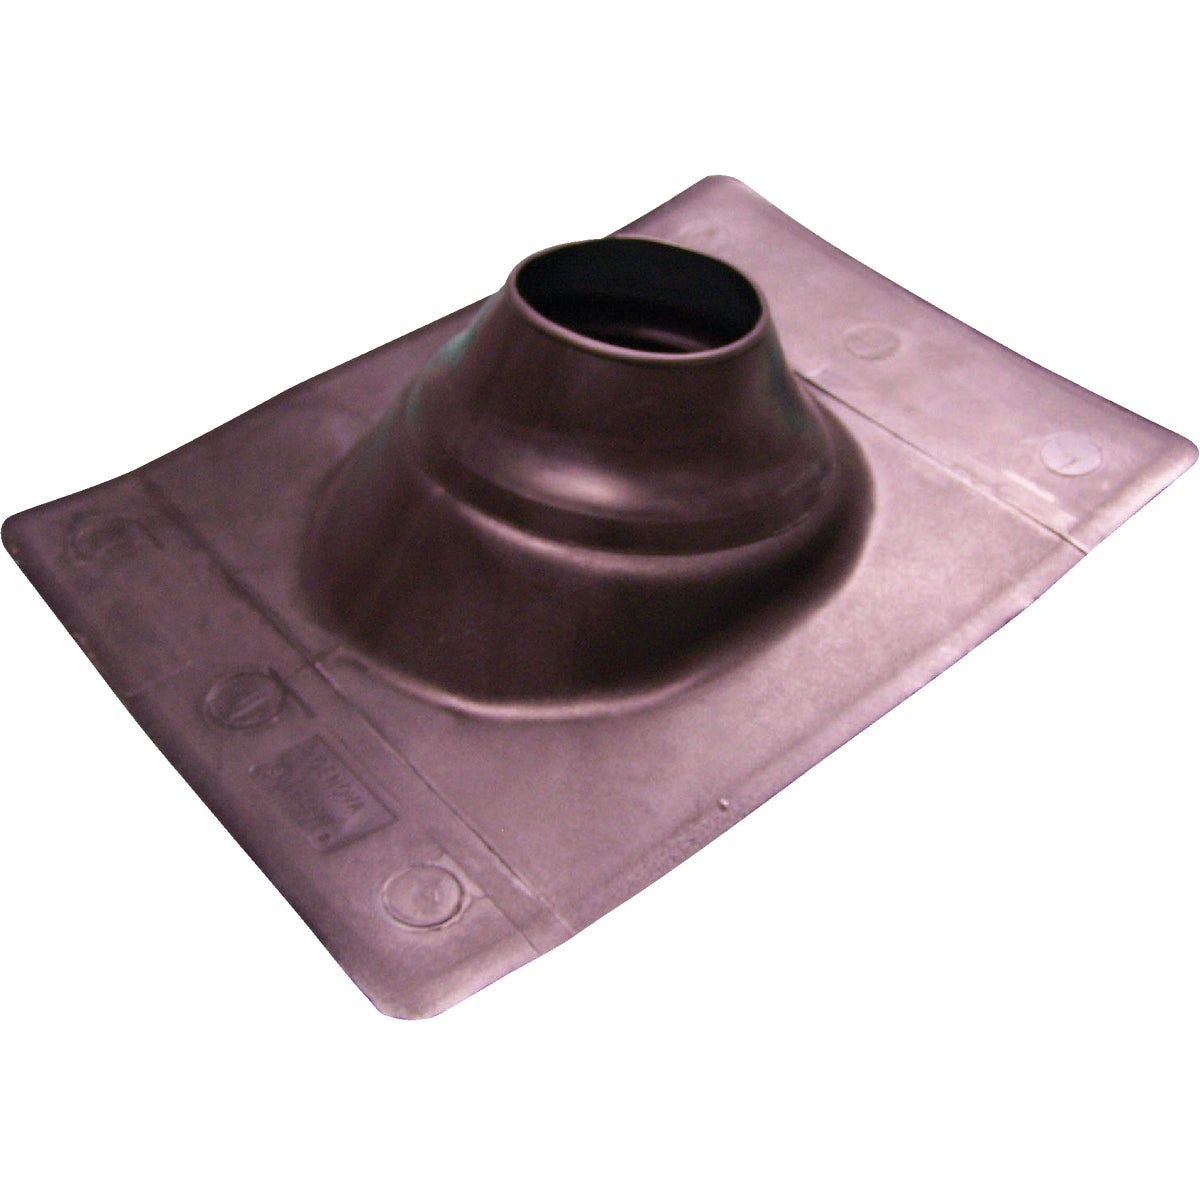 "3"" THERMO ROOF FLASHING - 14563 by Genova Inc"